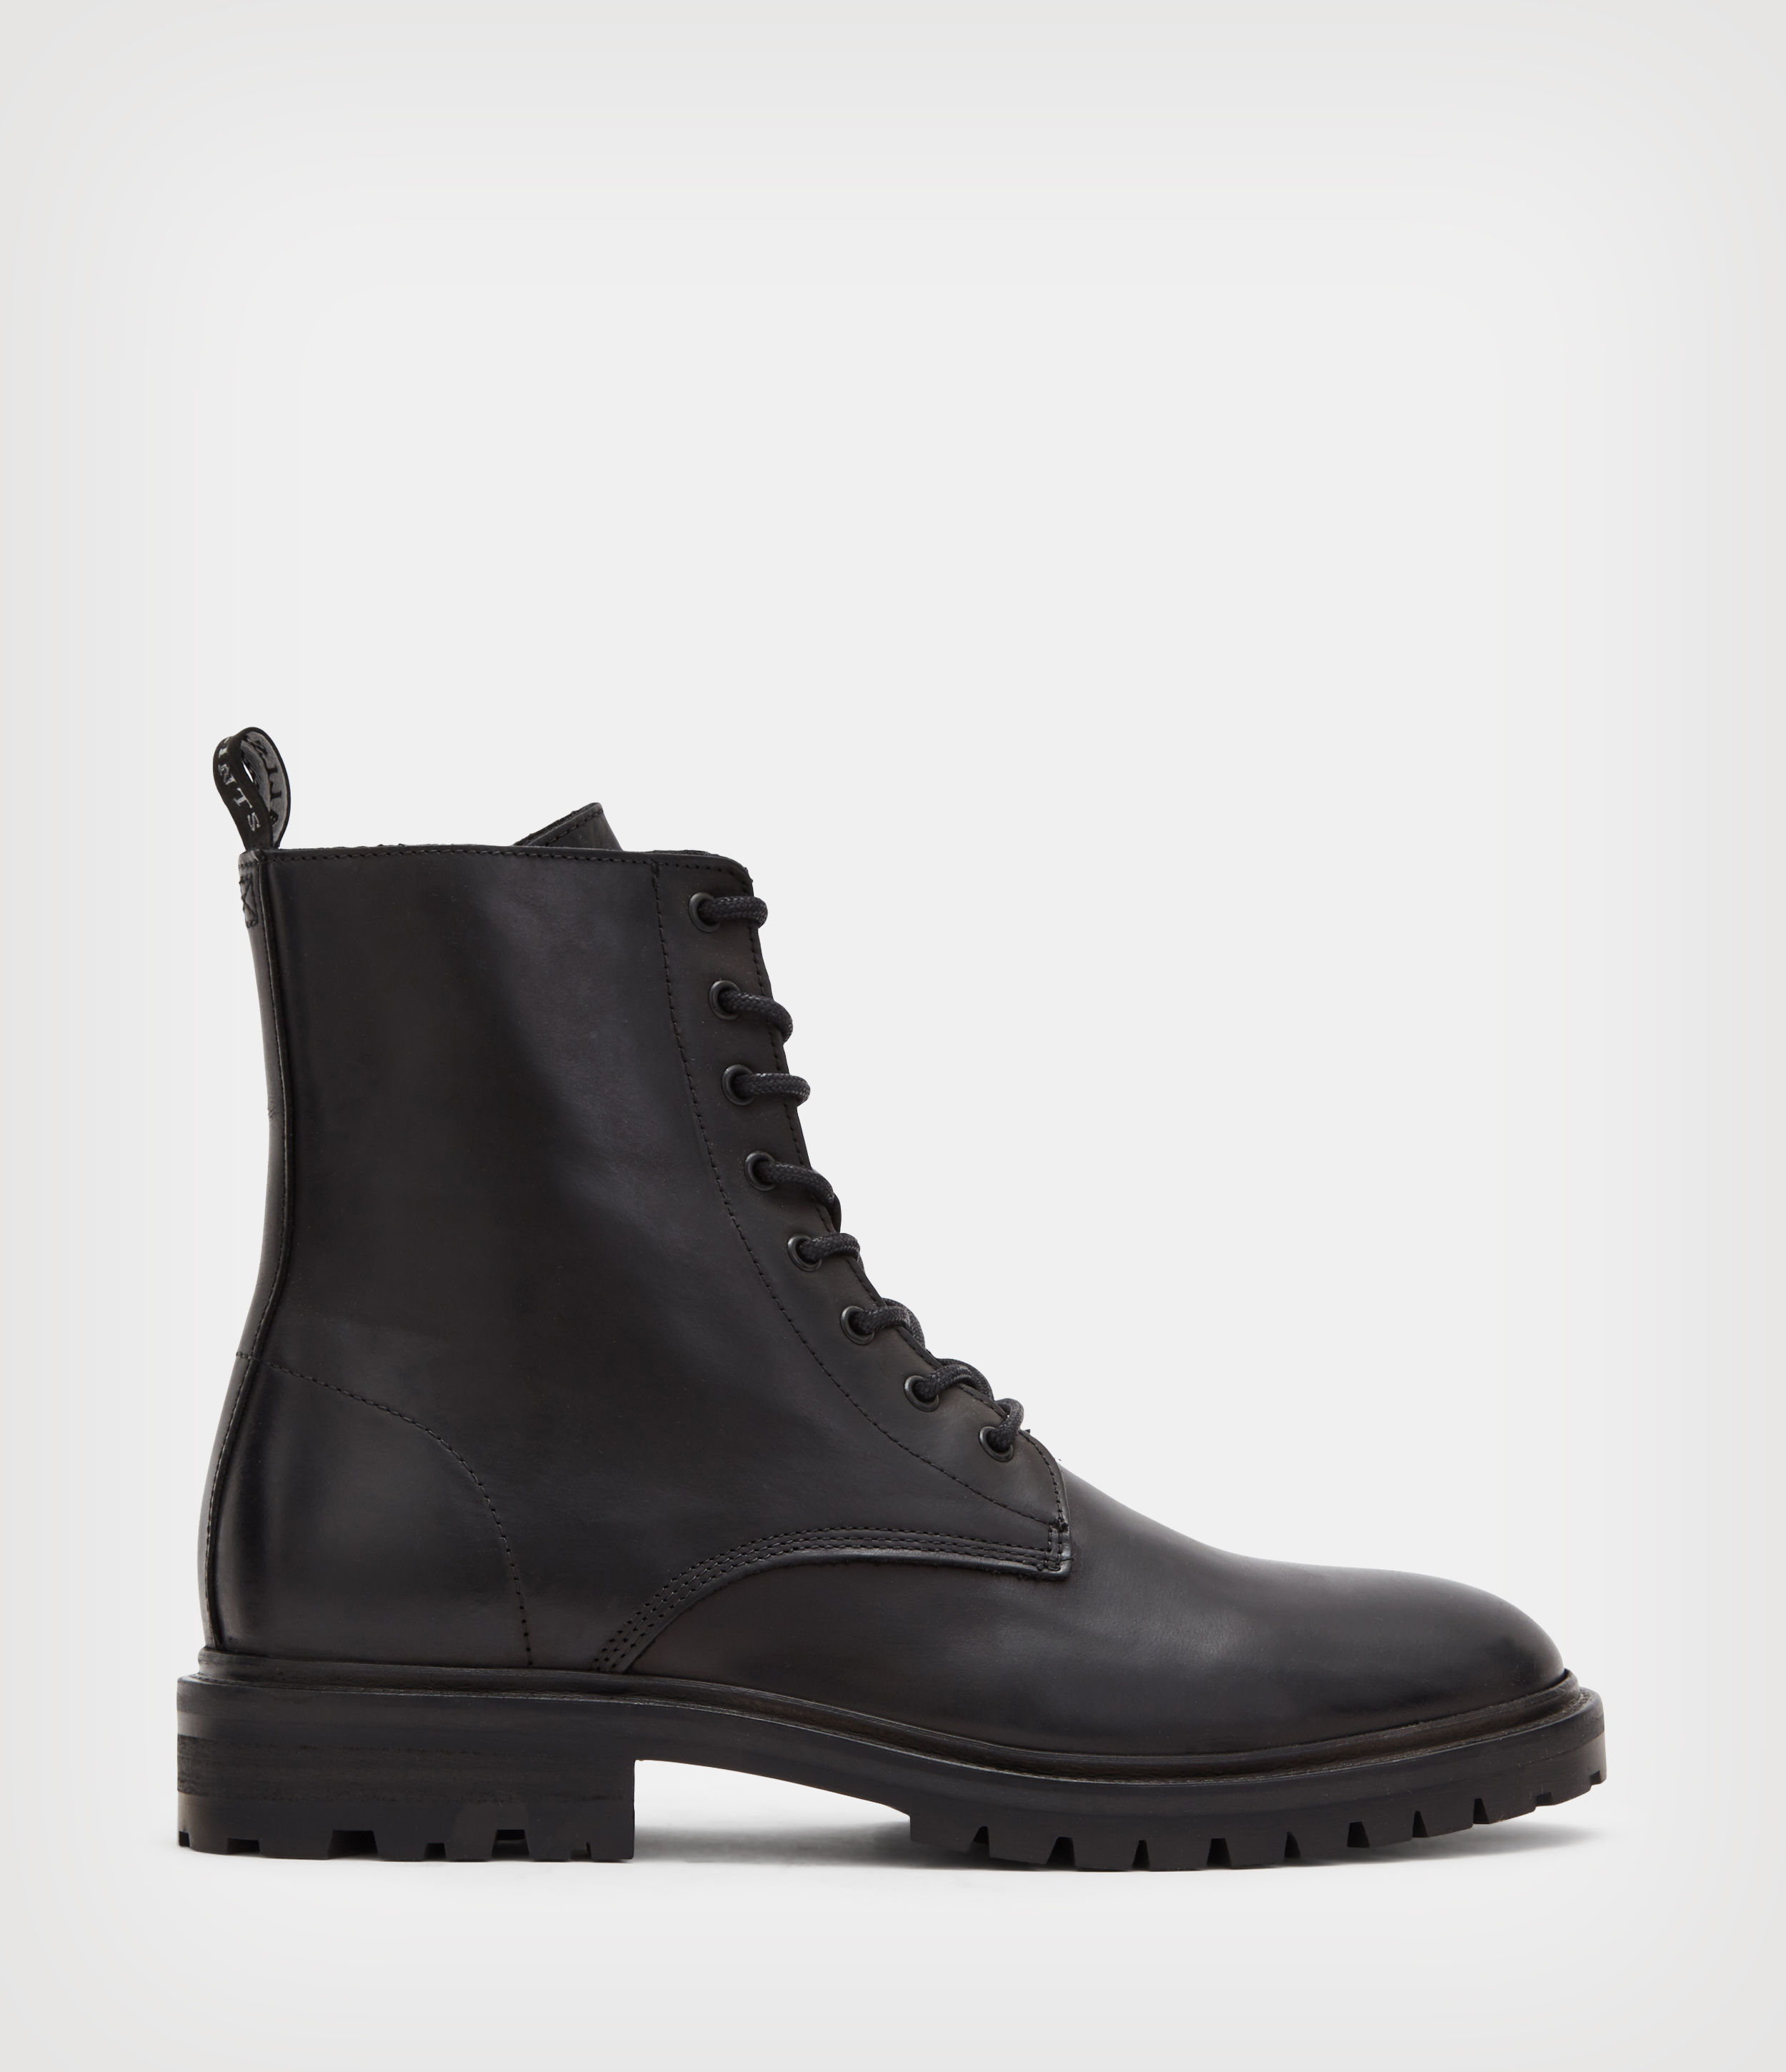 AllSaints Men's Classic Tobias Leather Boots, Black, Size: UK 8/US 9/EU 42